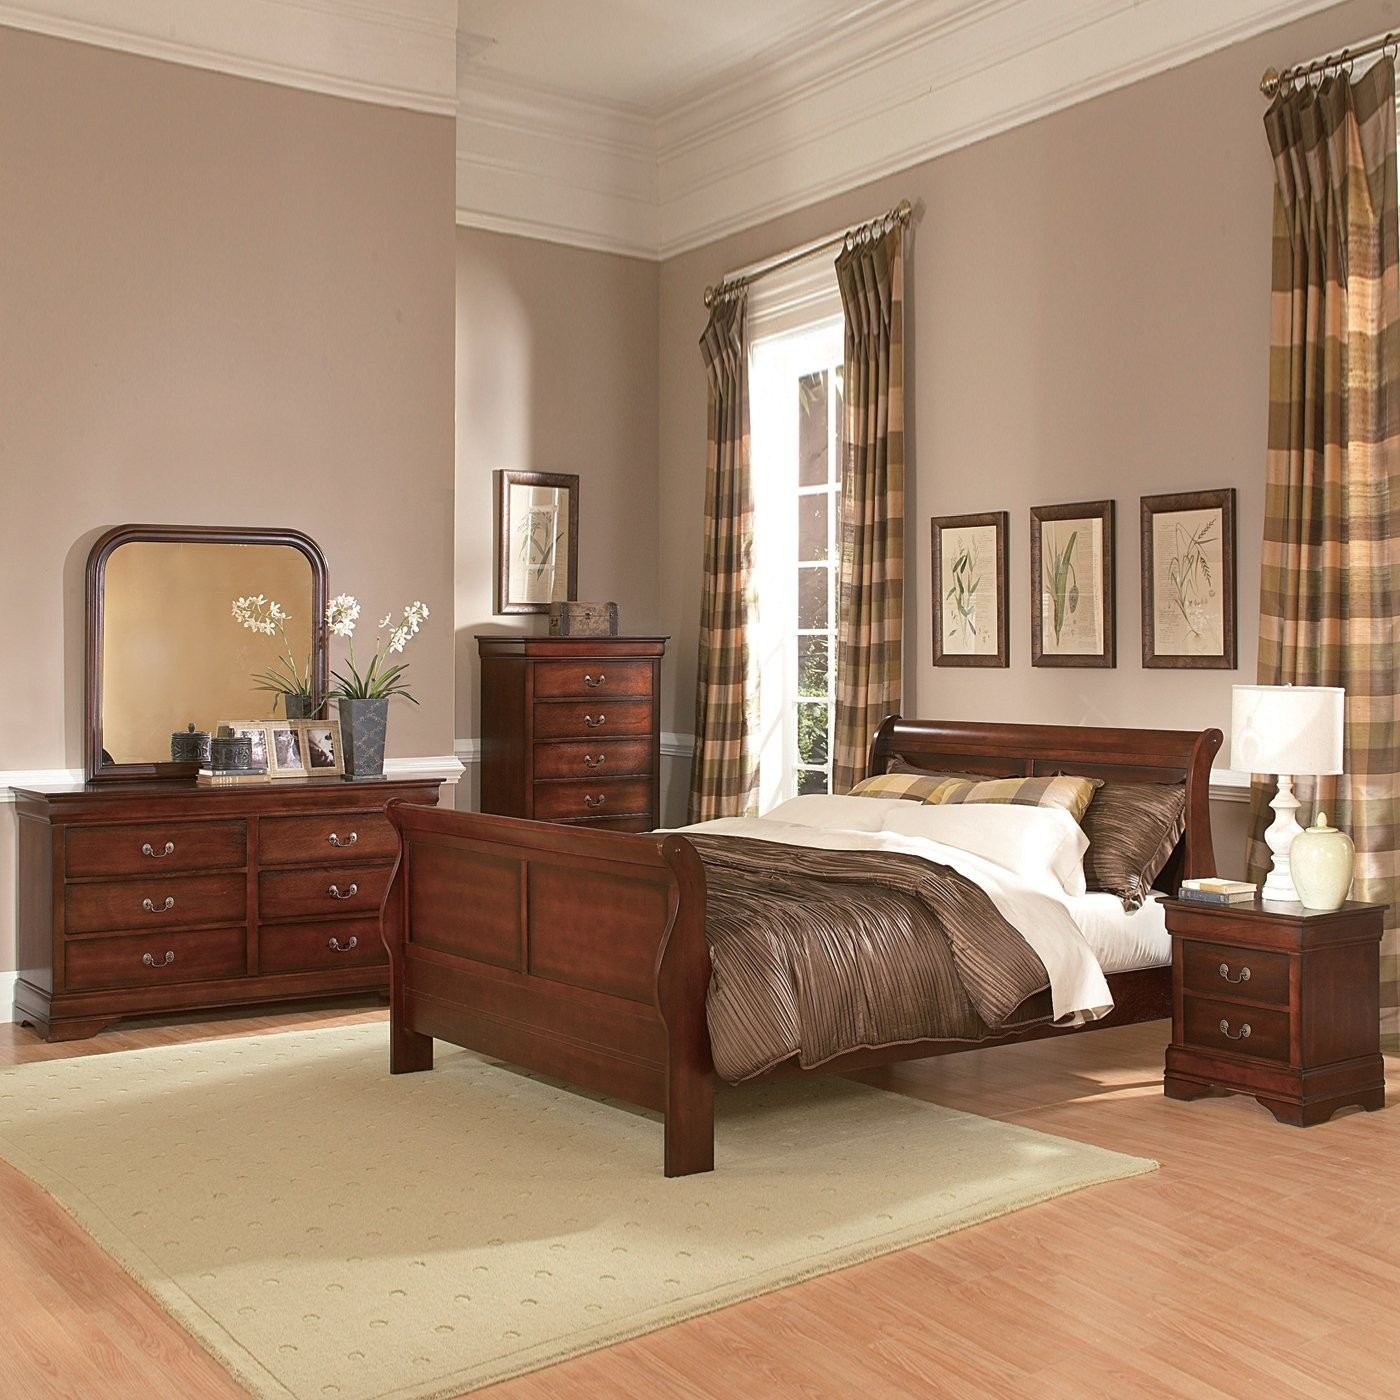 Brown Bedroom Sets | Marceladick.com